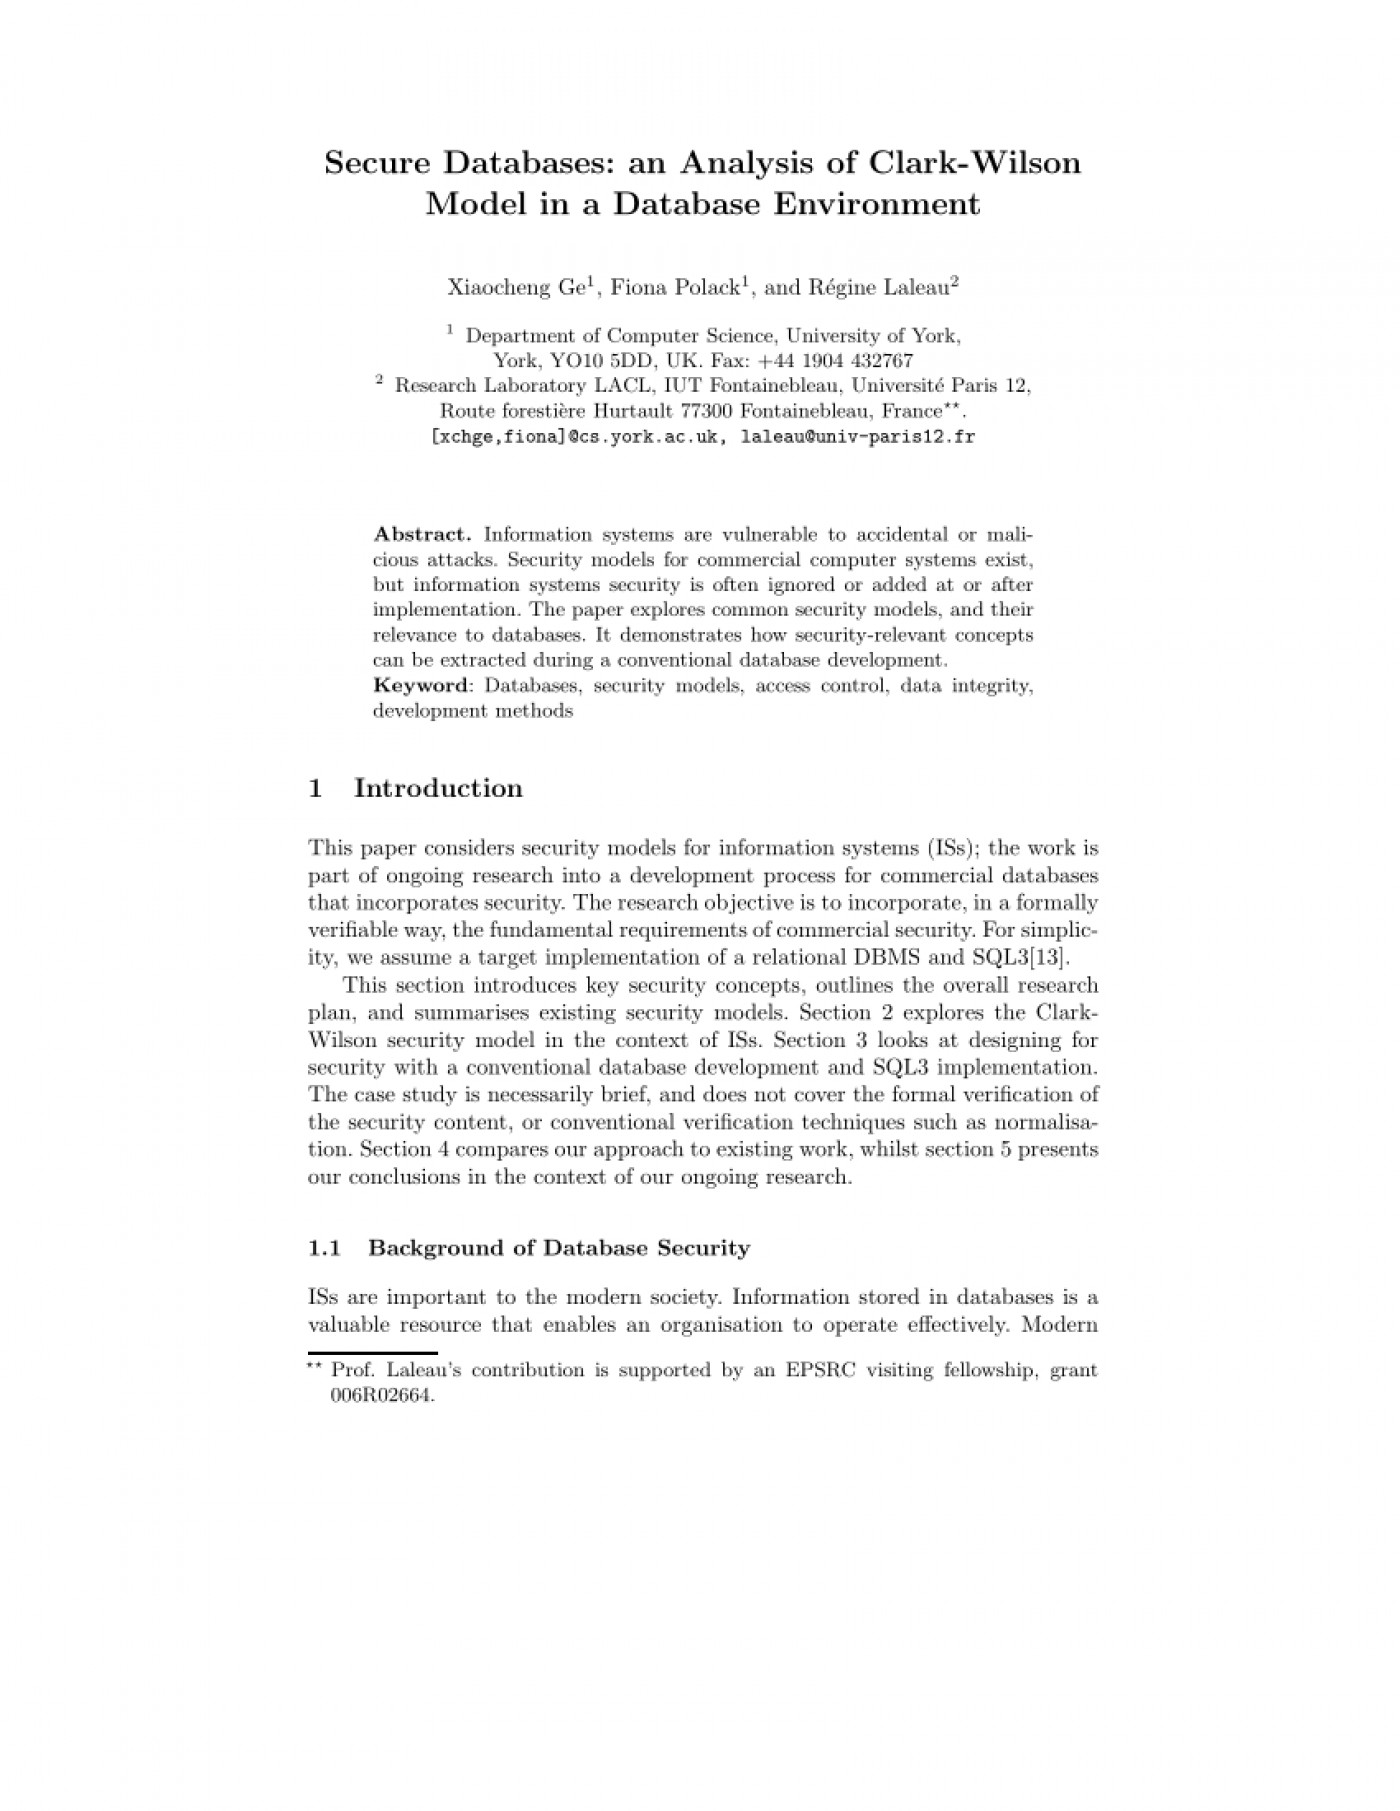 006 Database Security Research Paper Abstract Fascinating 1400